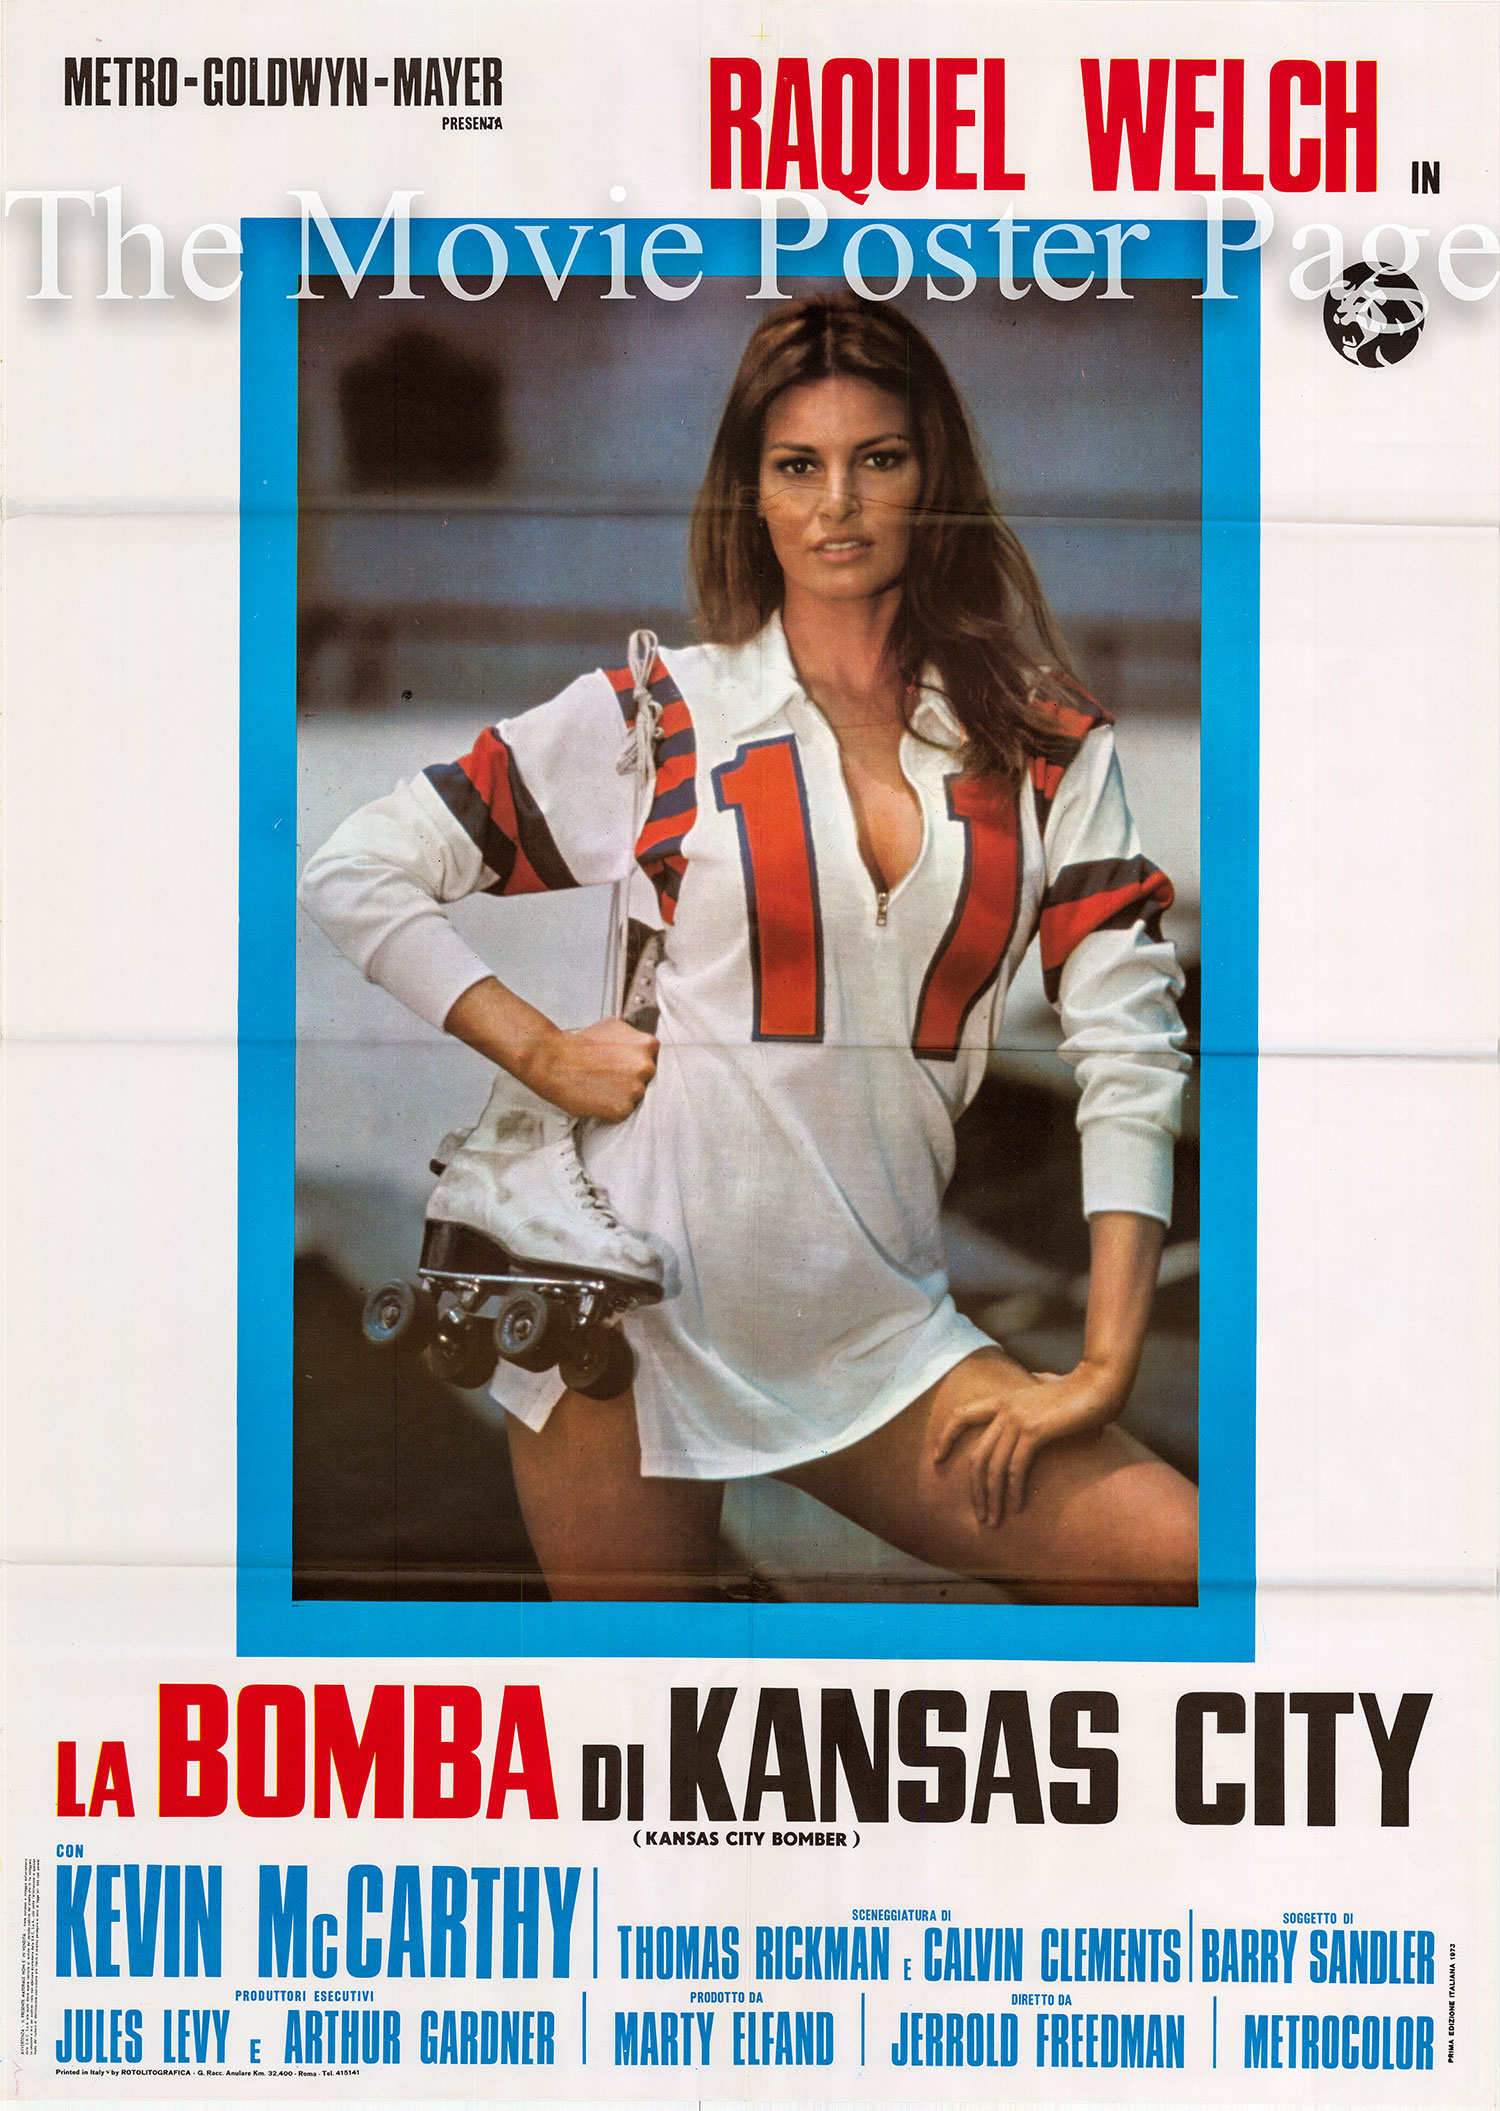 Pictured is an Italian two-sheet poster for the 1972 Jerrold Freedman film Kansas City Bomber starring Raquel Welch as K.C. Carr.